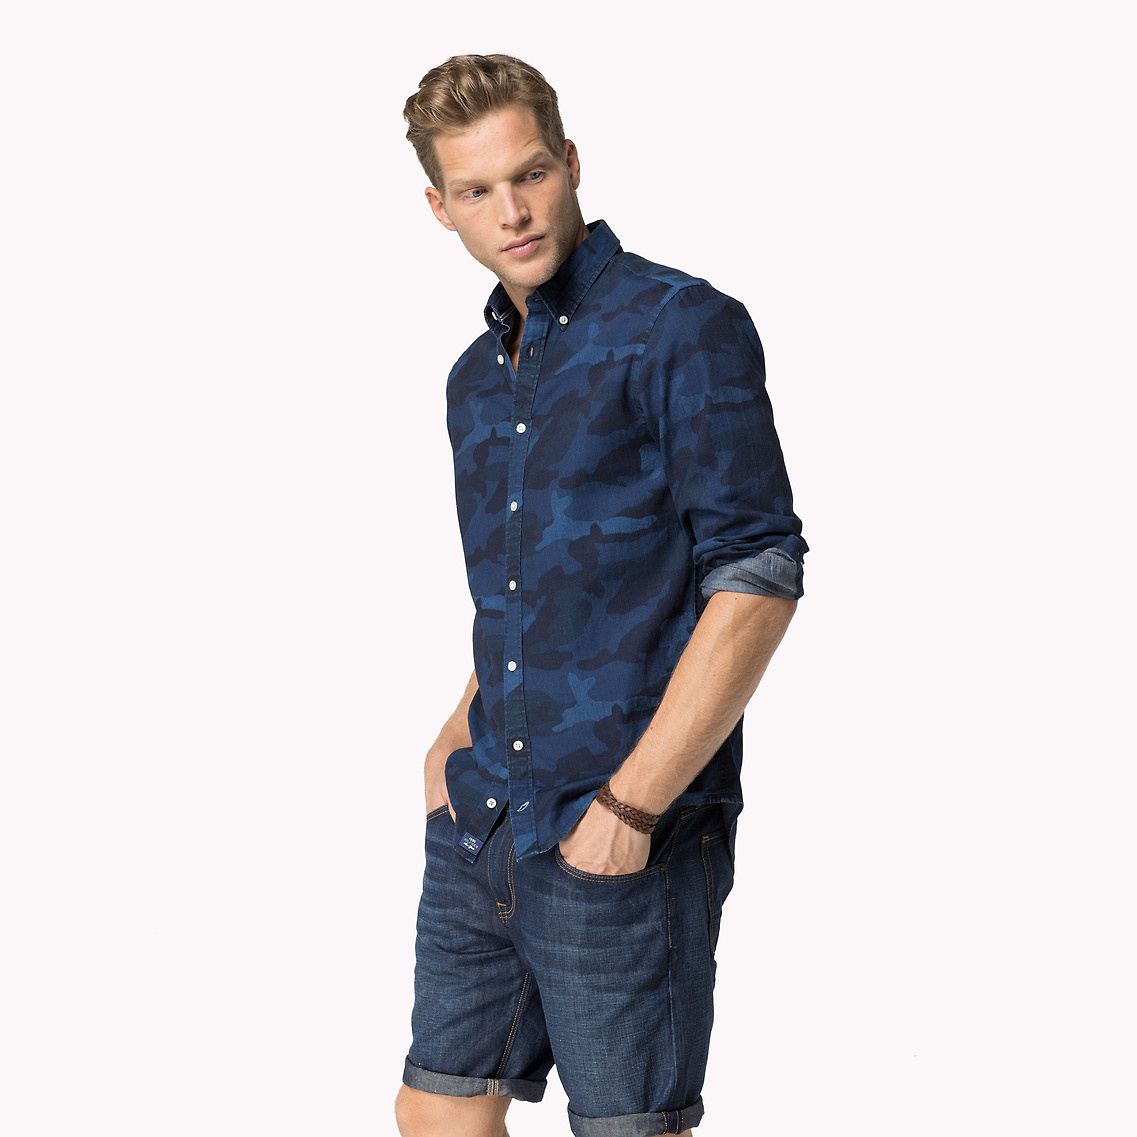 81649f6b019a9 Tommy Hilfiger Camouflage Chambray Shirt in Blue for Men - Lyst